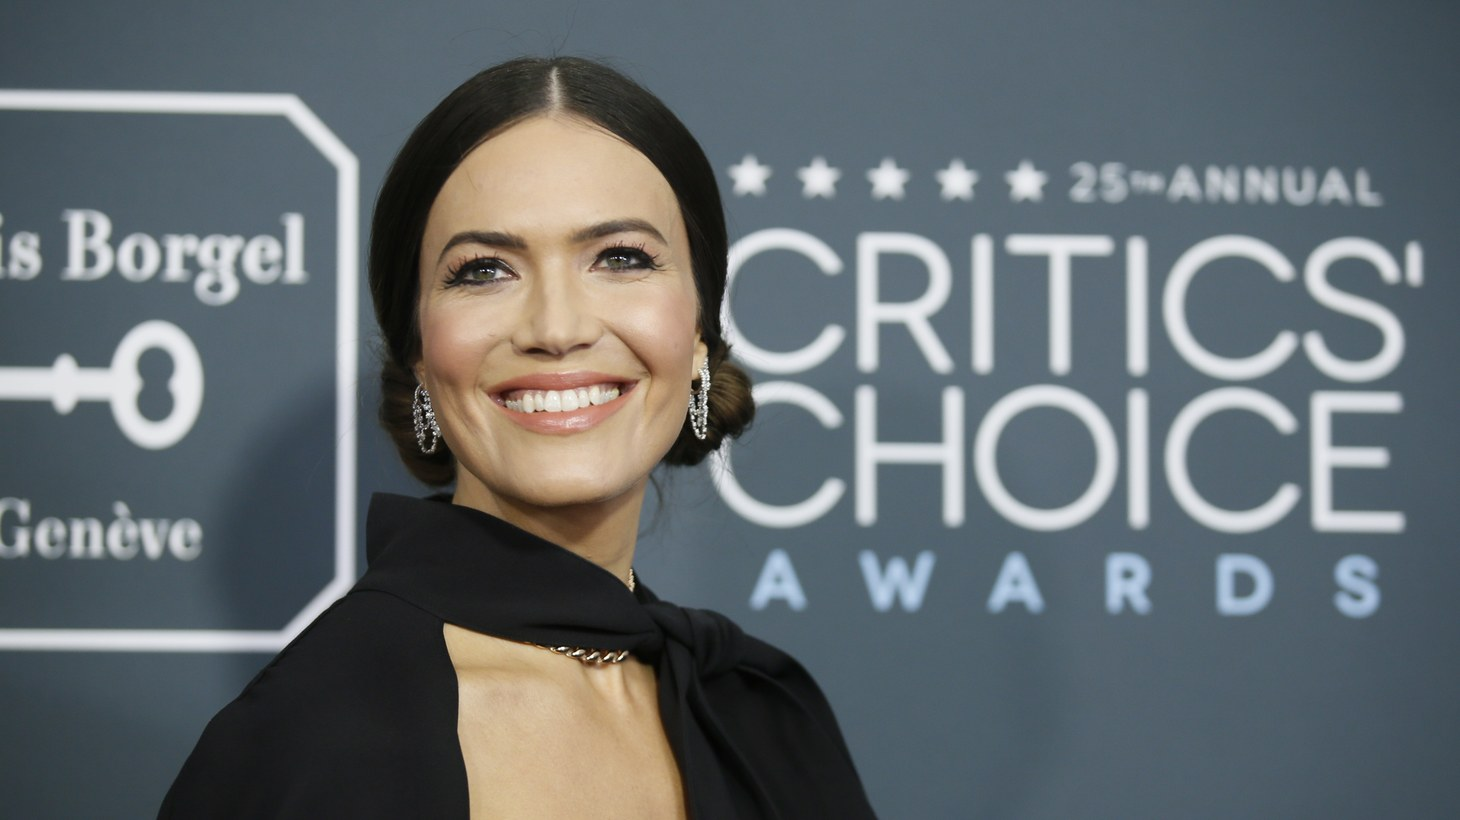 """Mandy Moore, a star on NBC's """"This is US,"""" arrives at the 25th Critics Choice Awards in Santa Monica, California, U.S., January 12, 2020."""